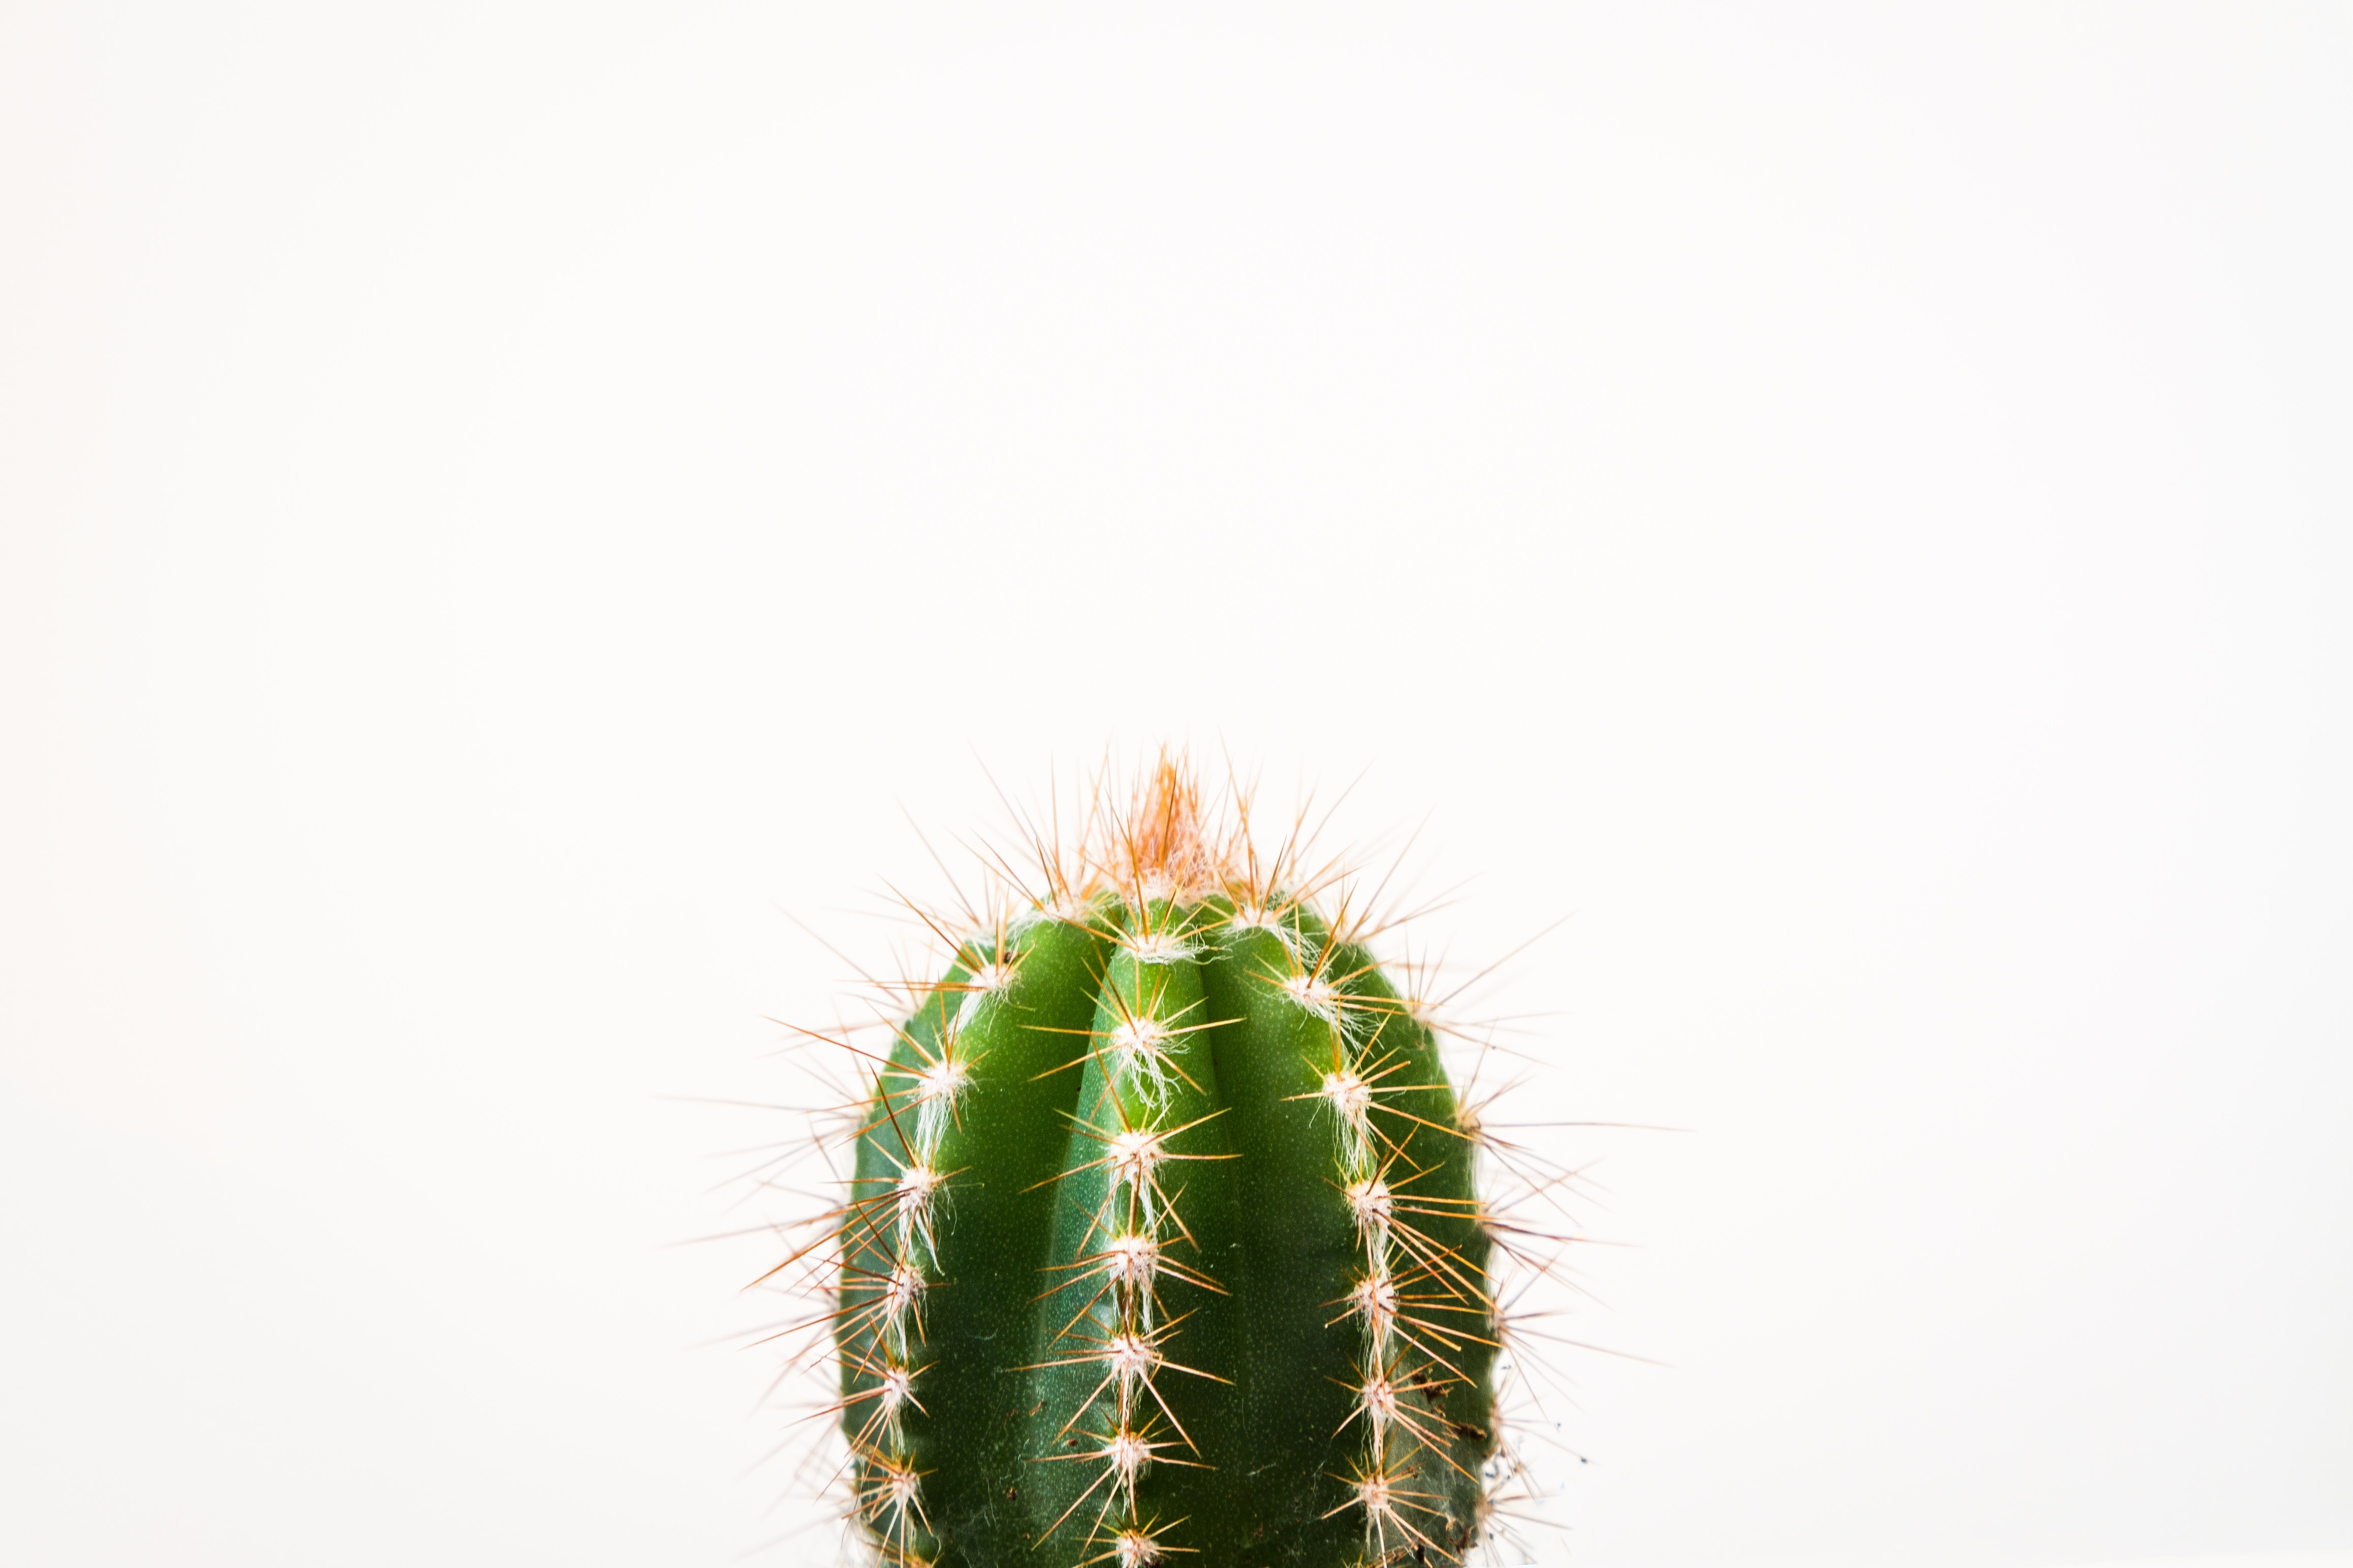 closeup photo of cactus against white background